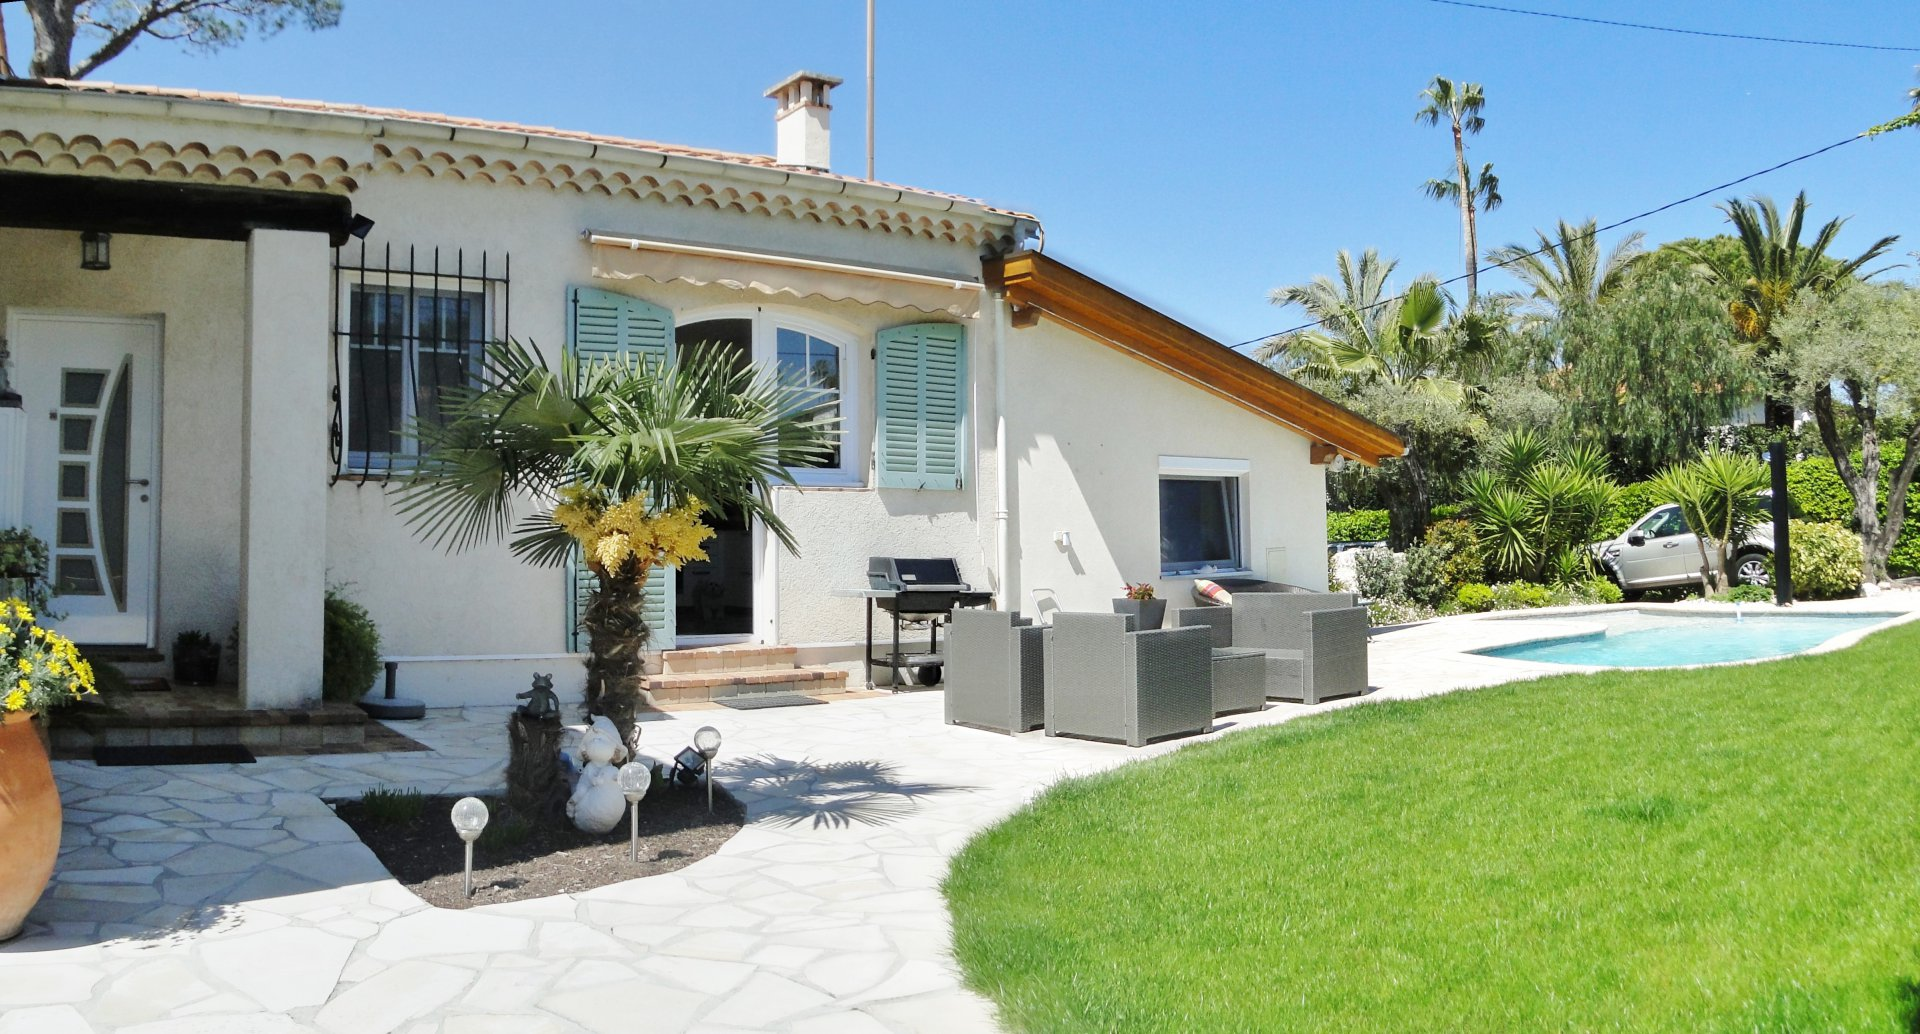 CHARMING VILLA TO RENT PER MONTH FOR SUMMER TIME